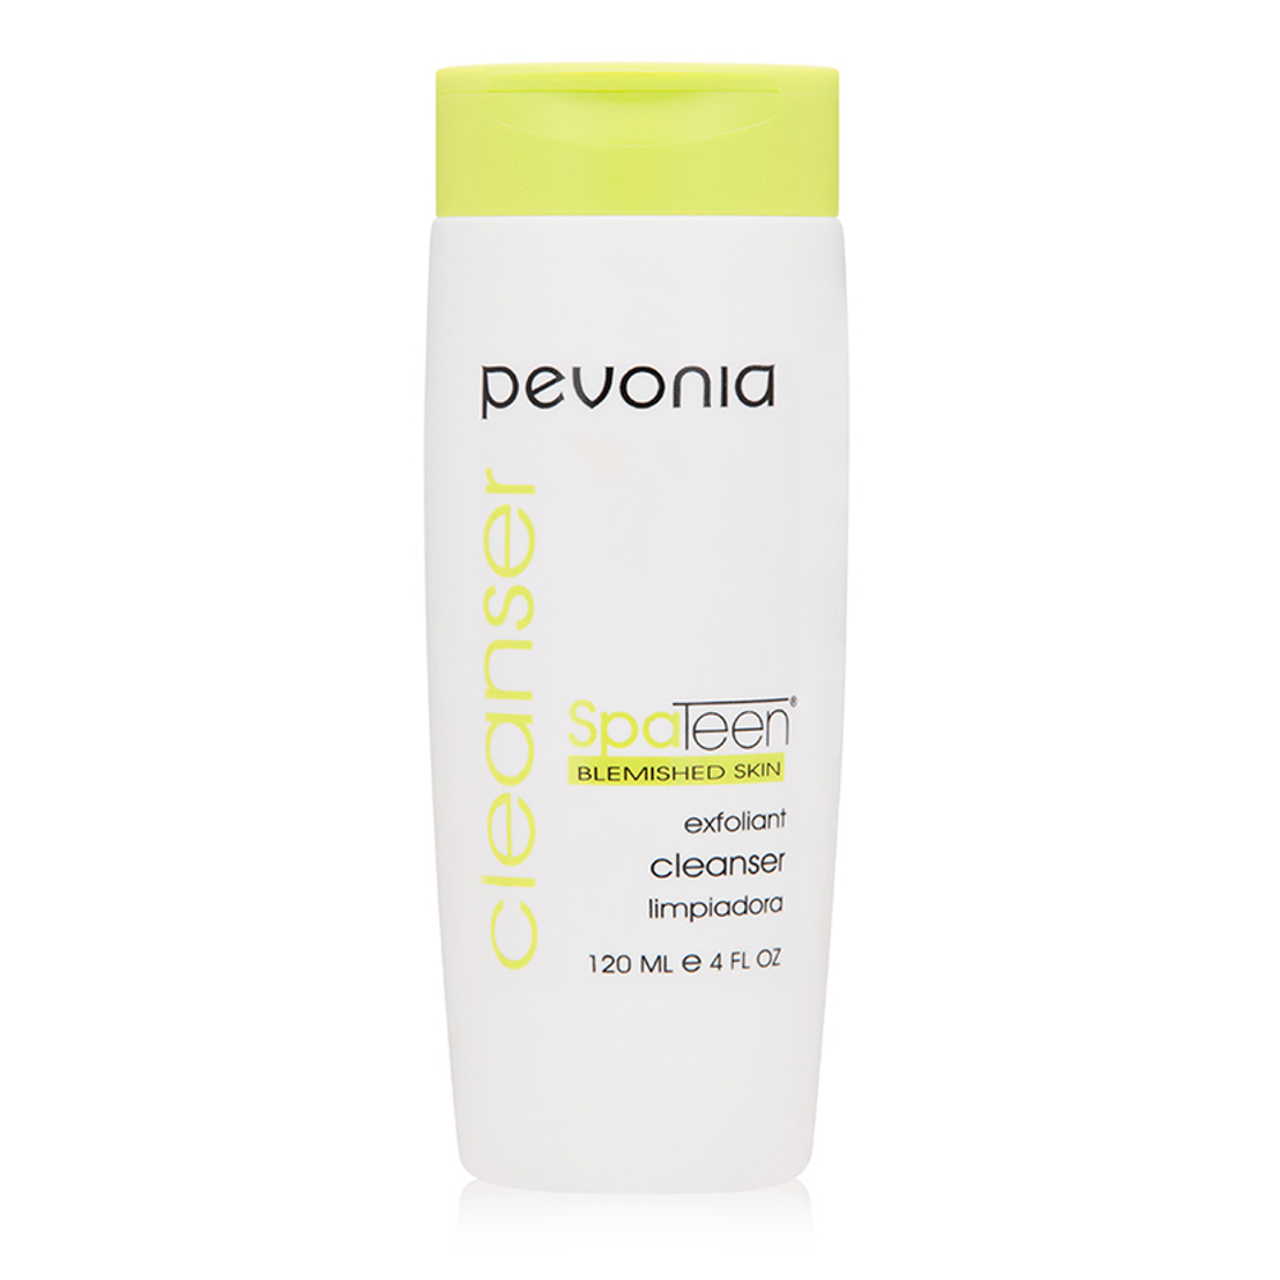 Pevonia SpaTeen Blemished Skin Cleanser BeautifiedYou.com